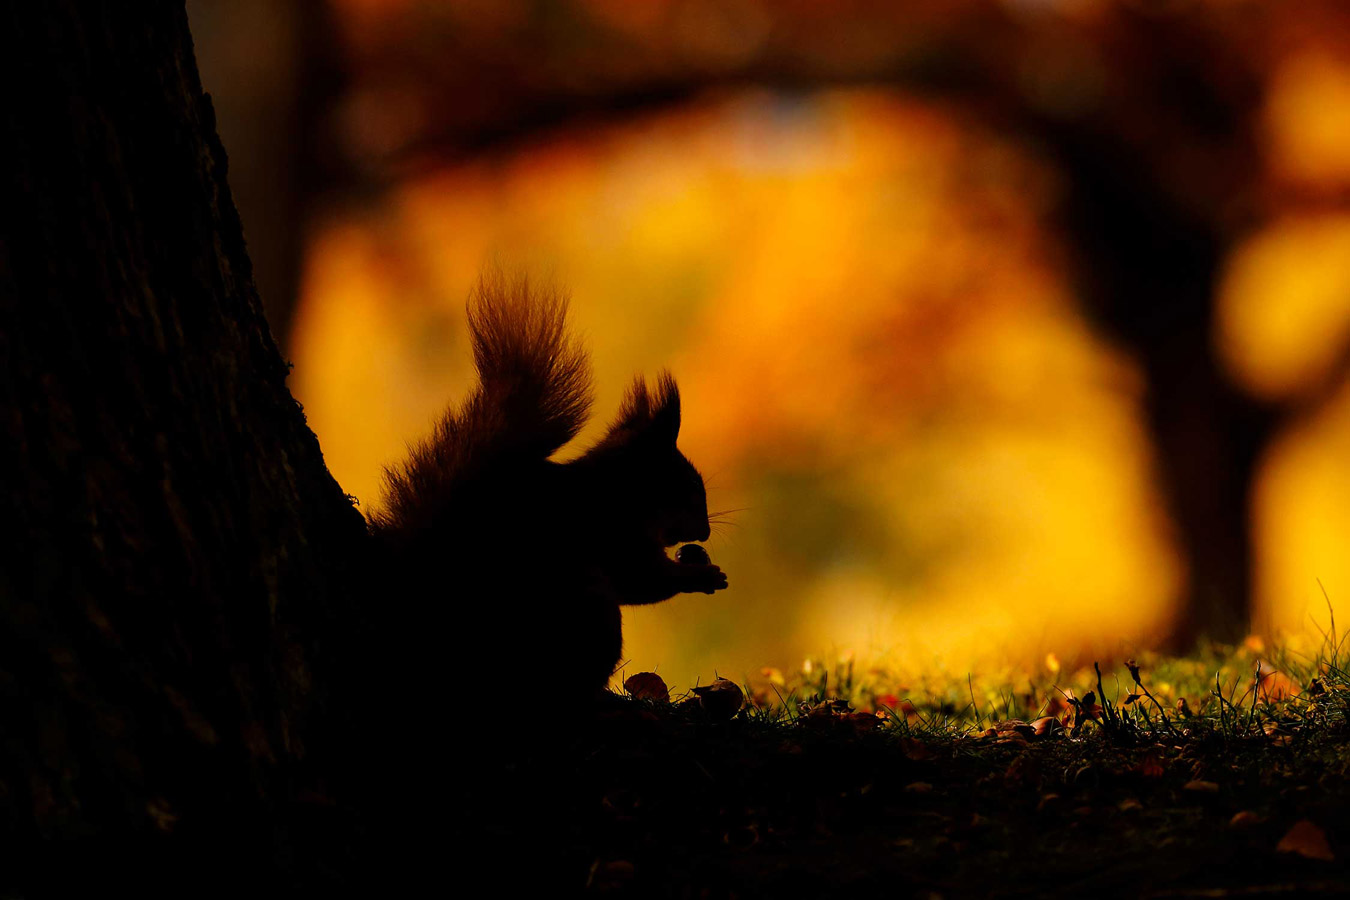 Autumn Red squirrel silhouette. Kinrara, Cairngorms National Park, Scotland, © Neil McIntyre, British Wildlife Photography Awards